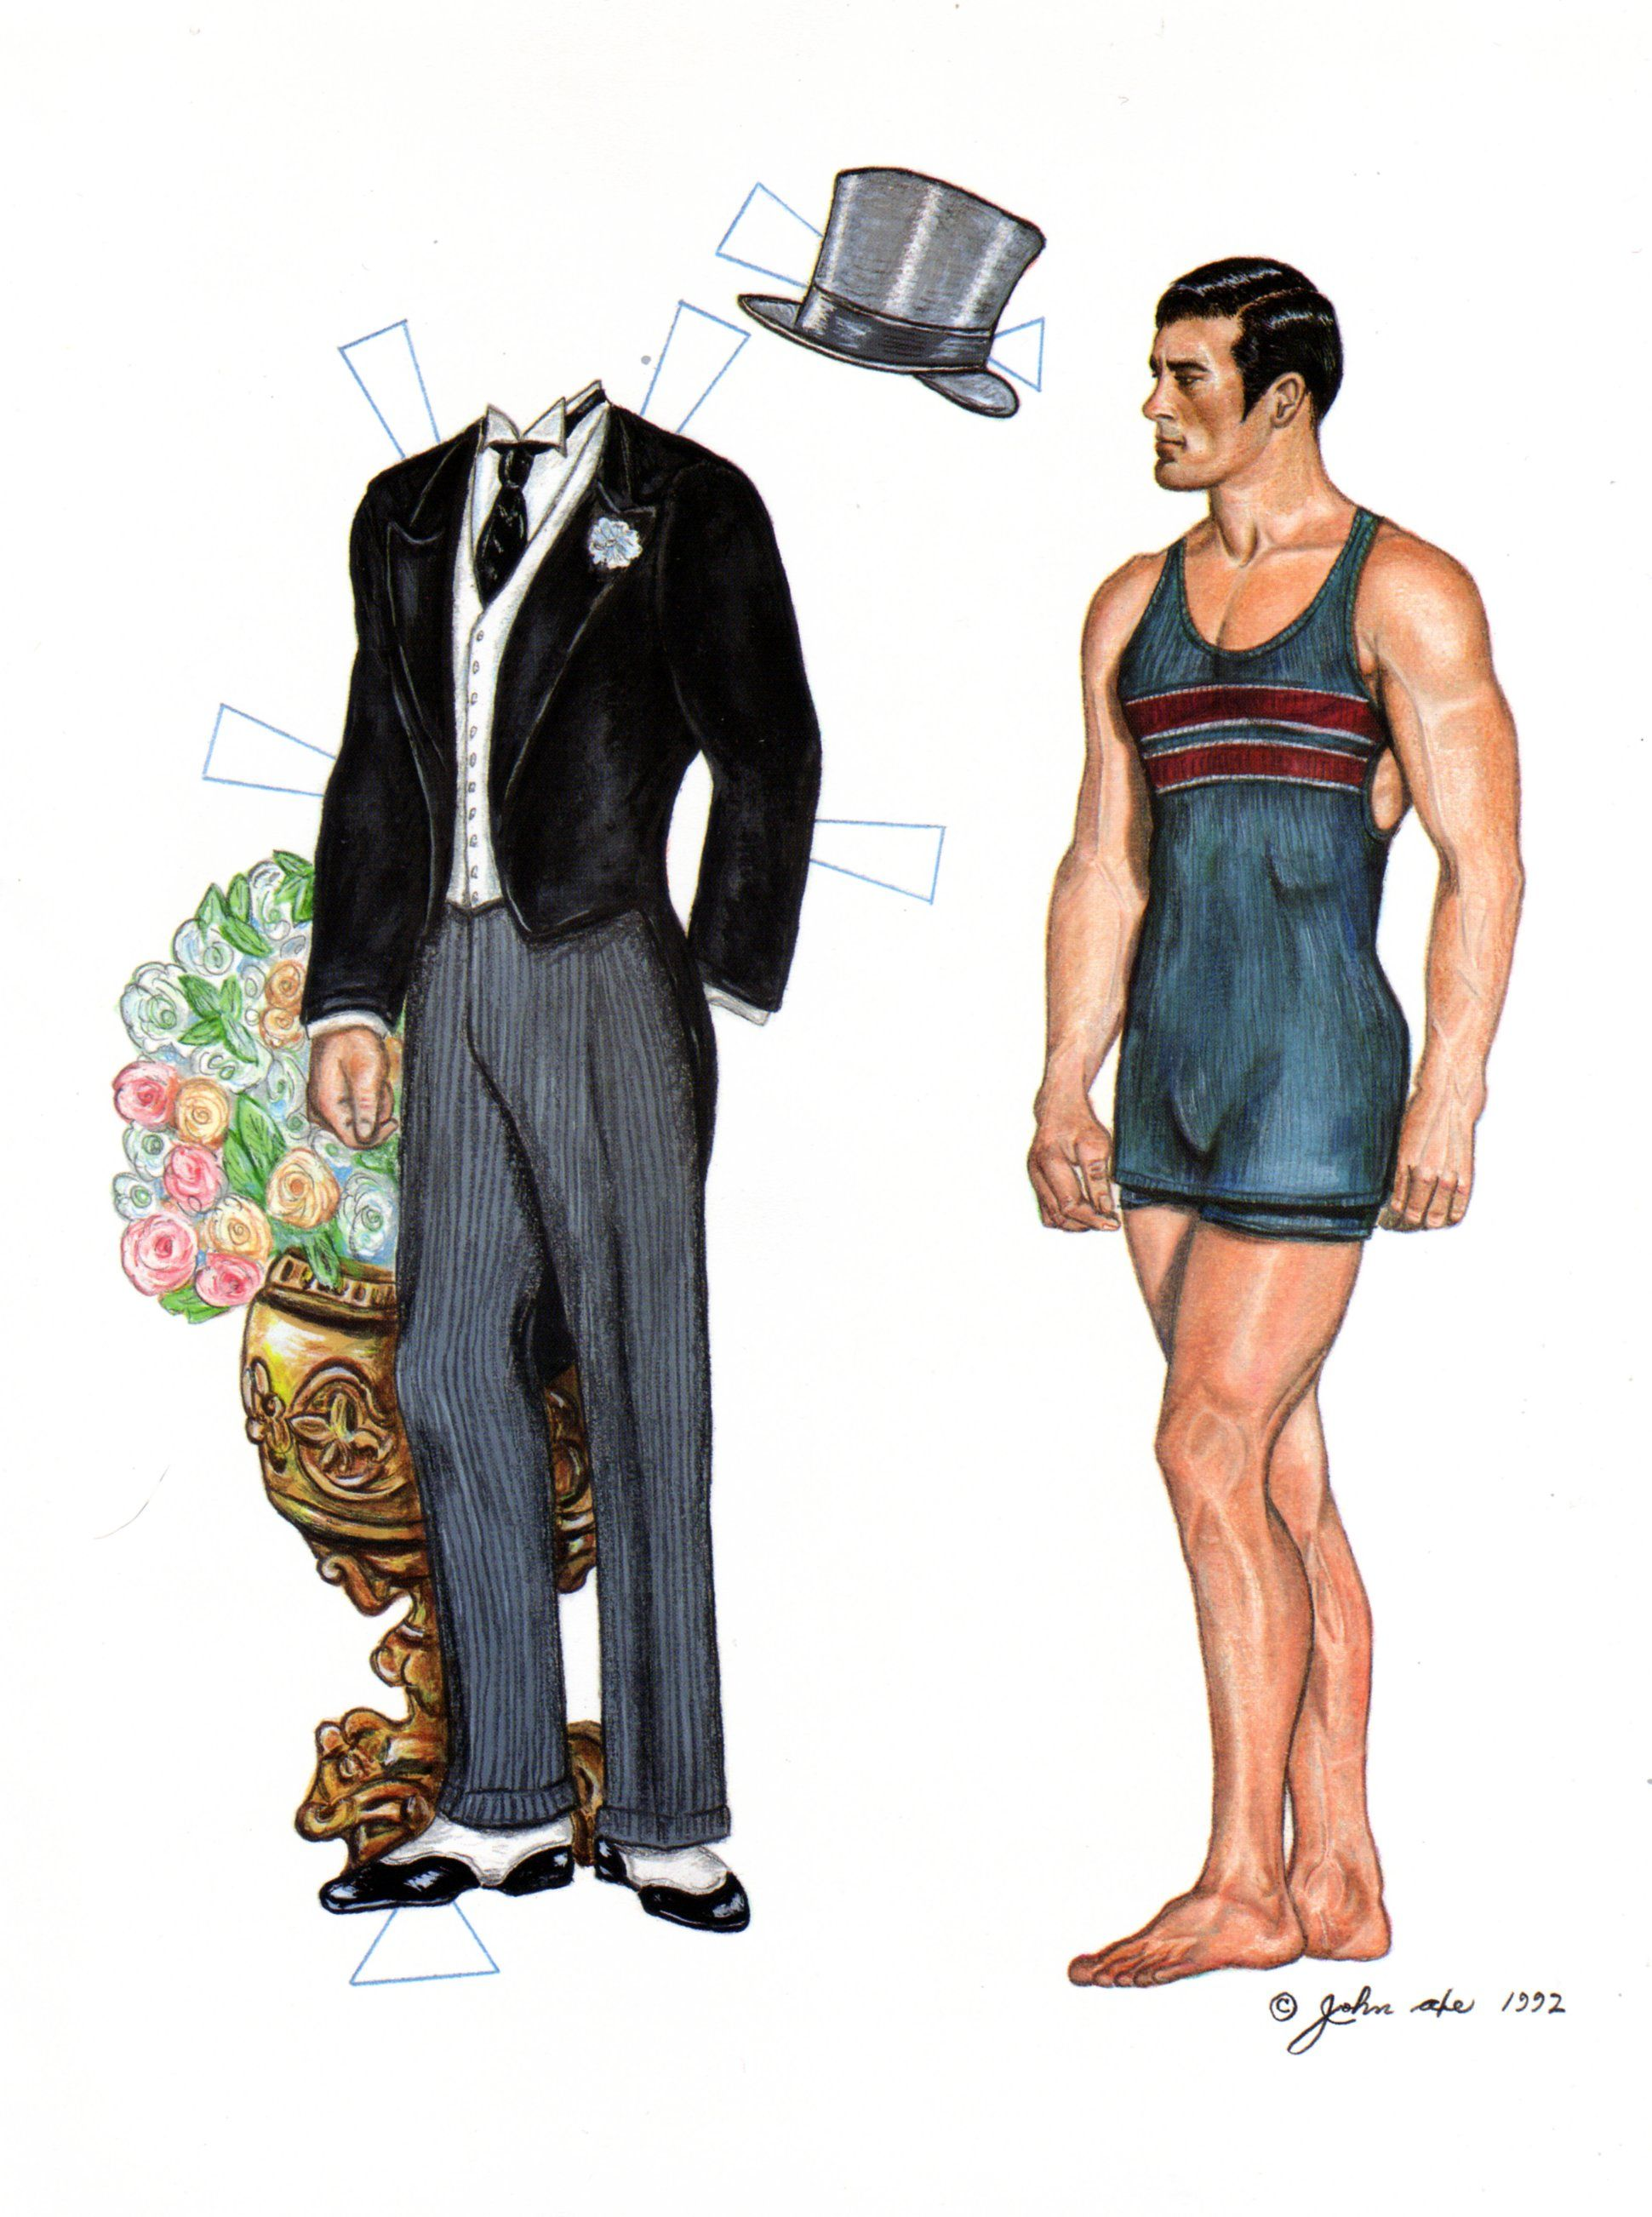 John Was One Of Our Best Artists For Rendering Male Paper Dolls Heres Neil In His Swim Togs Staring At A Formal Suit Top Hat